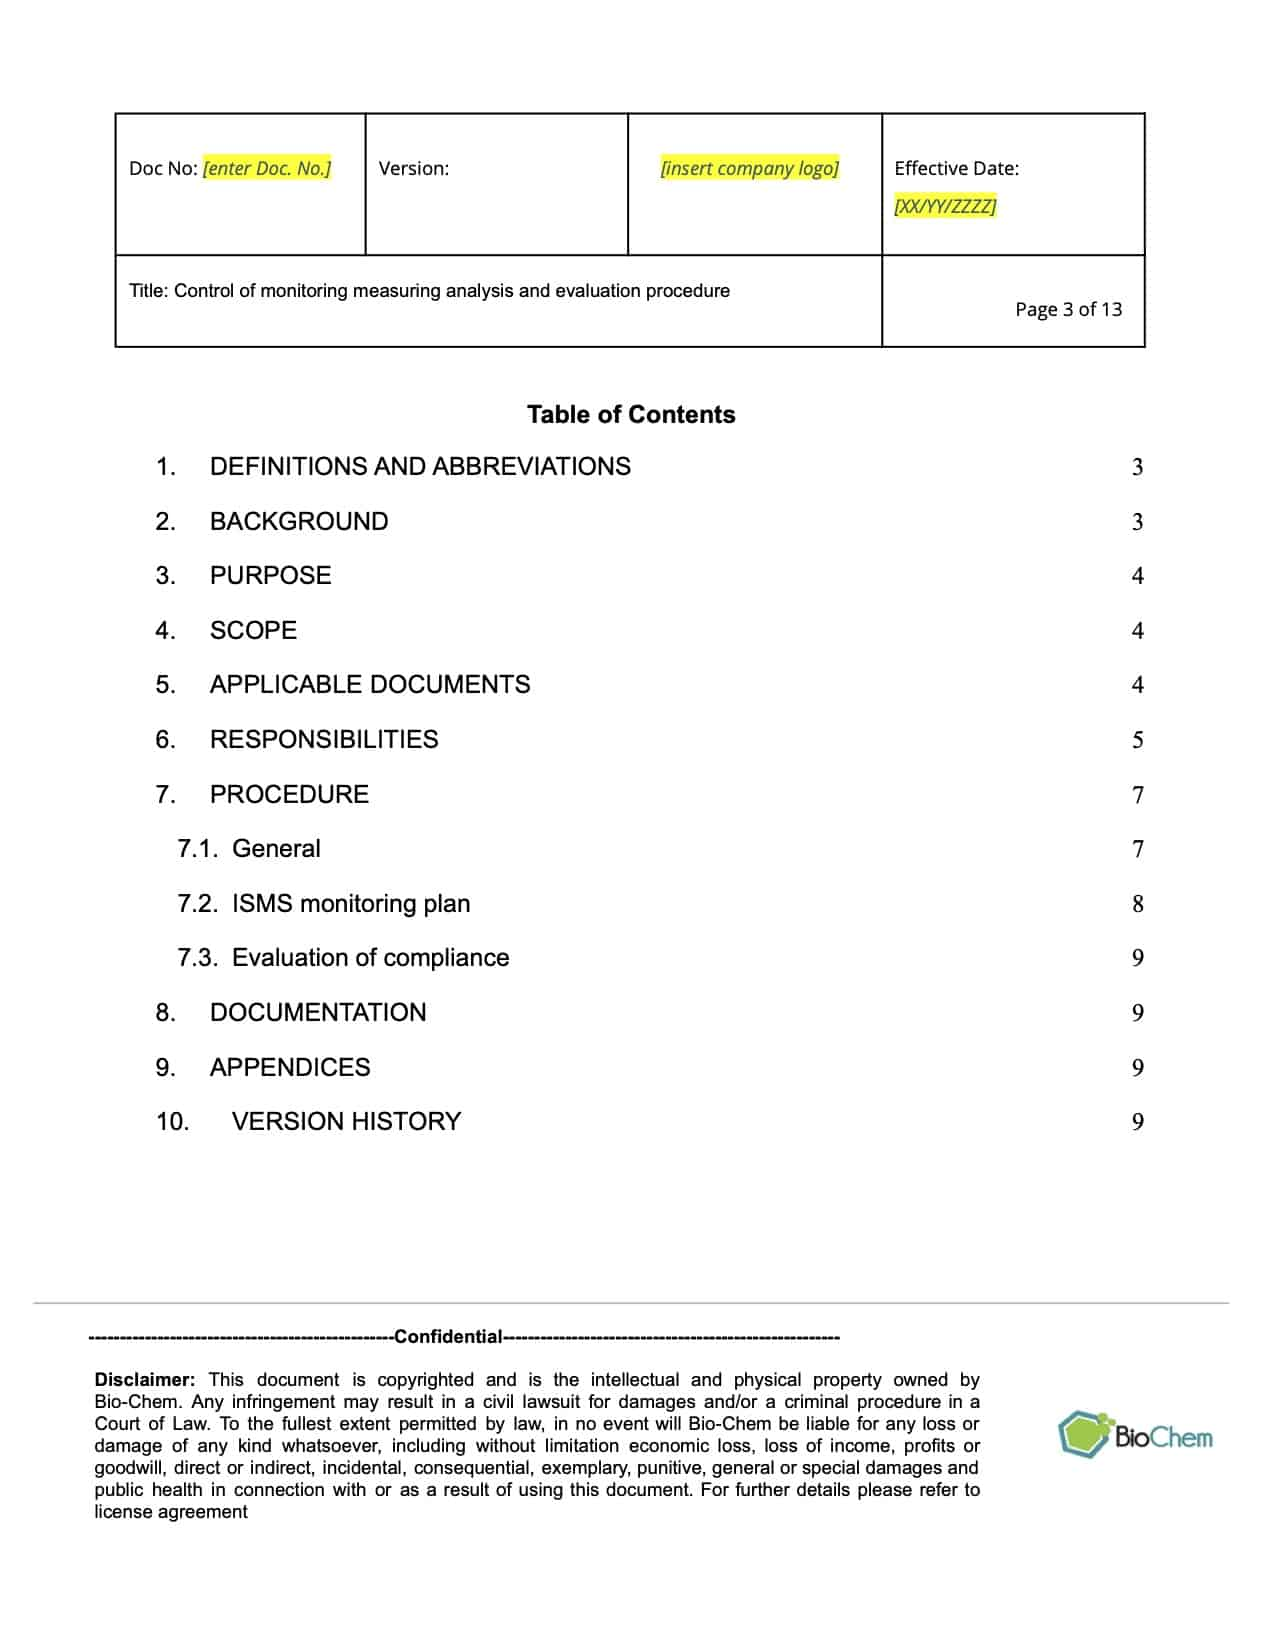 Control of Monitoring Measuring Analysis and Evaluation_BioChem_ISMS_Template preview 3